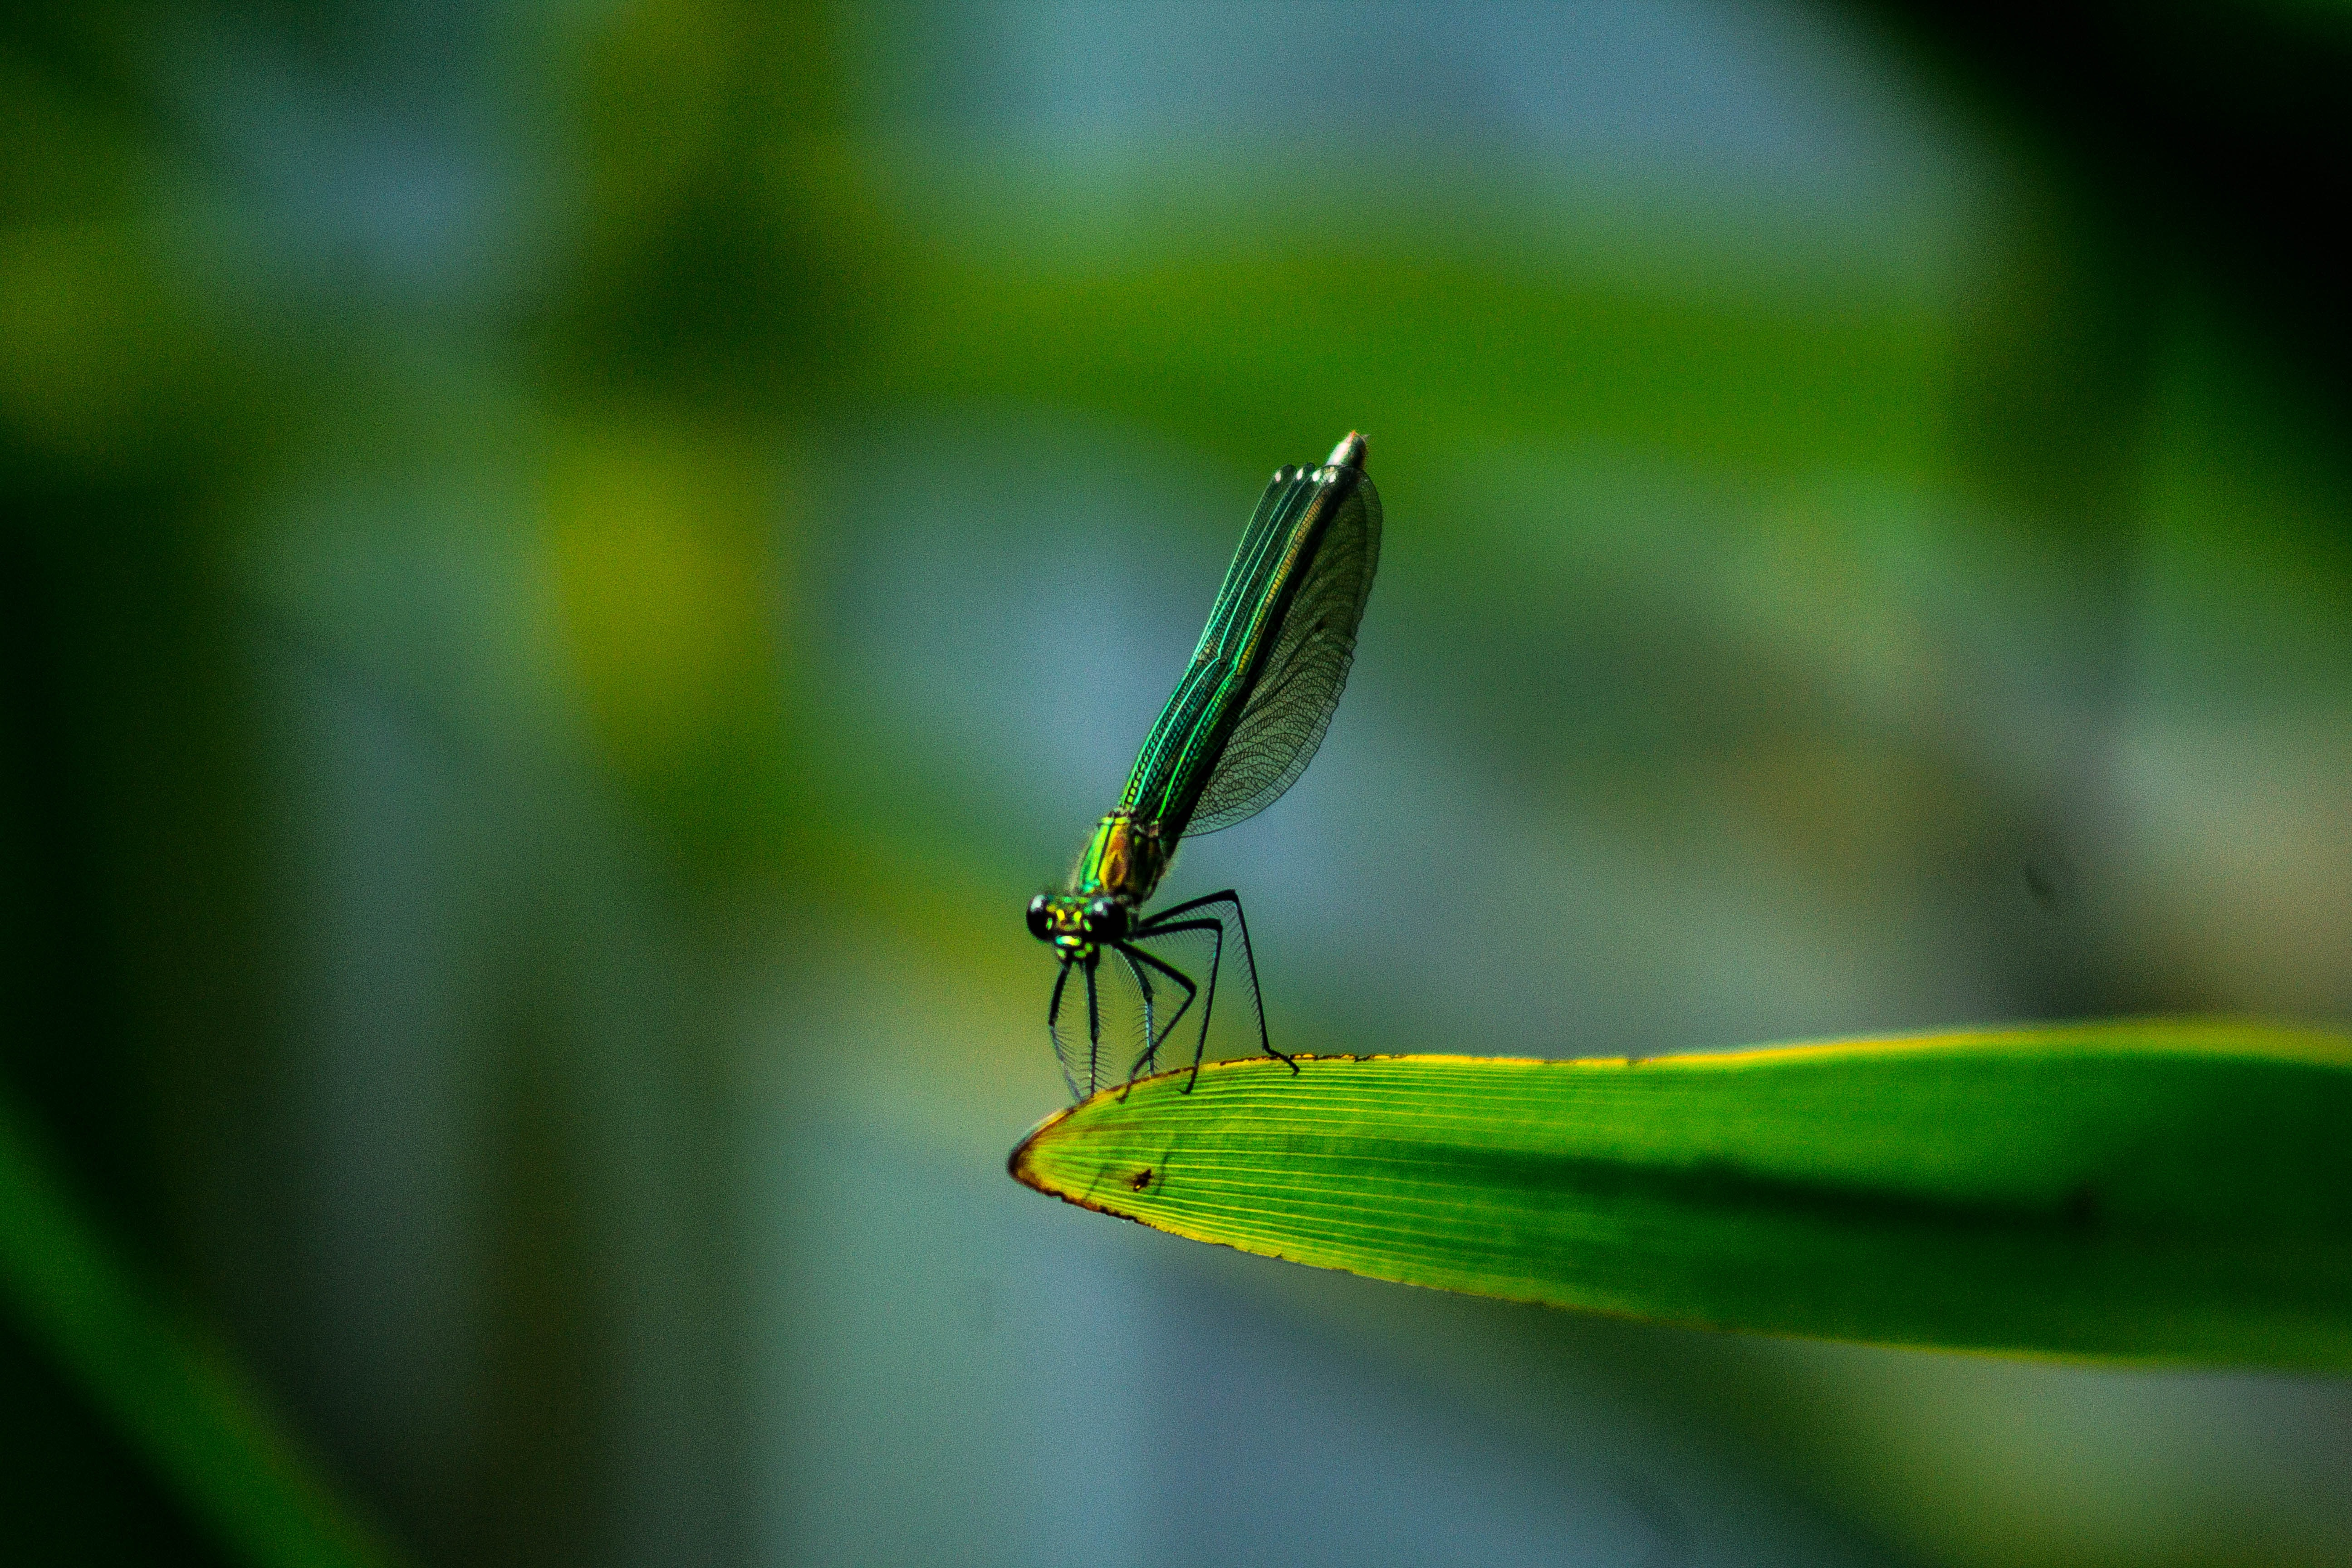 Green dragonfly blends in with its surroundings sitting on a leaf